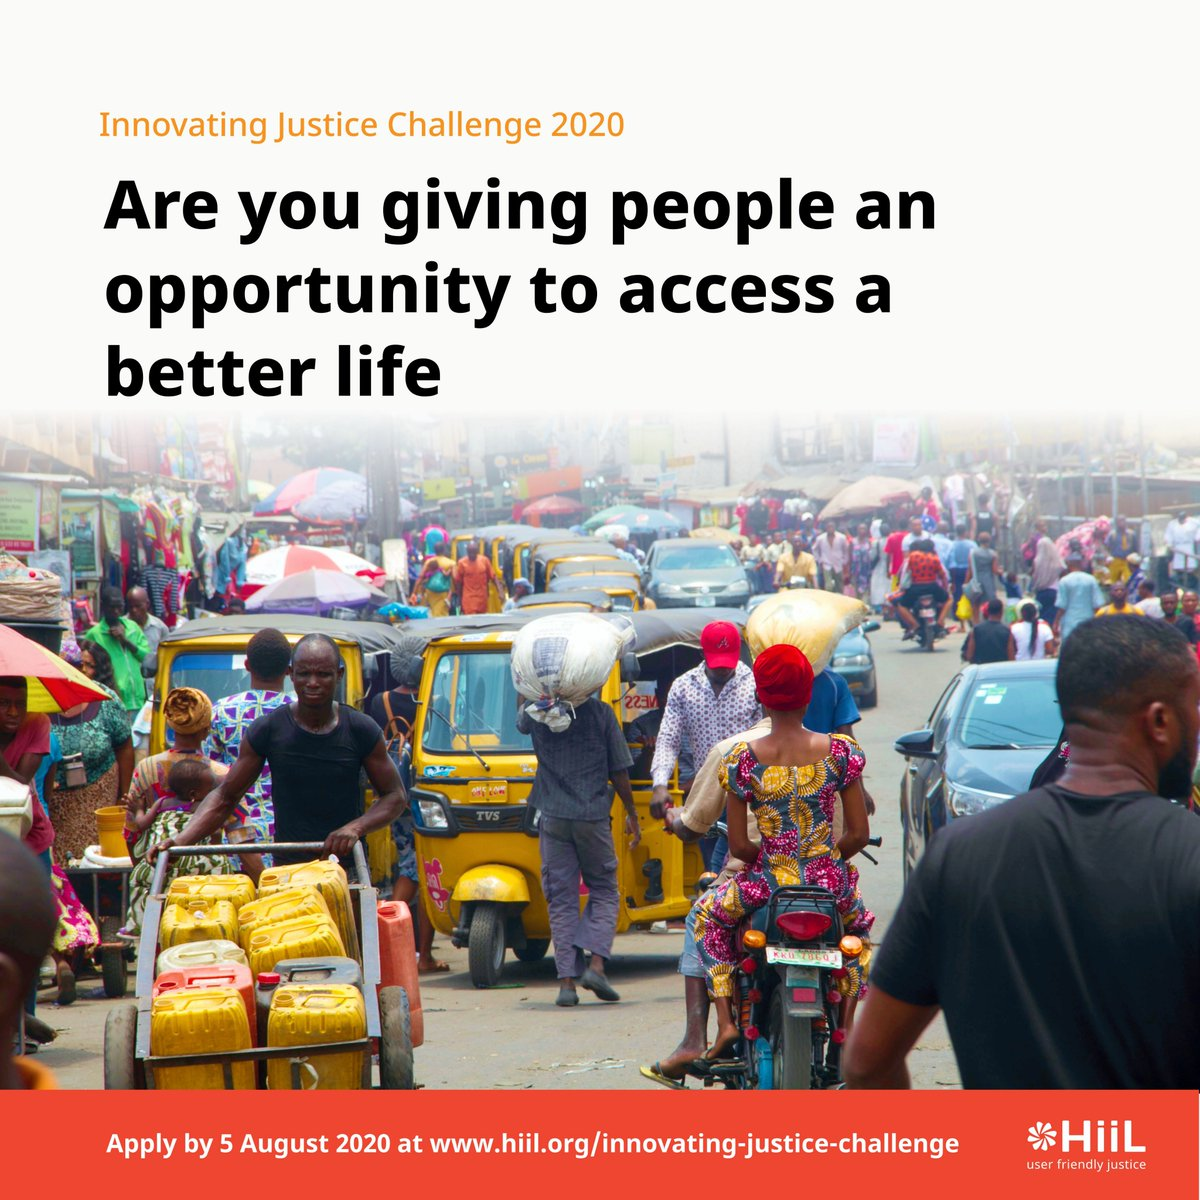 Are you giving people an opportunity to access a better life?  Then you should apply for the HiiL Innovating Justice Challenge 2020 for a chance to be selected for support through the prestigious HiiL Justice Accelerator.  You can apply at https://t.co/3947YFZEgx  #justinnovate20 https://t.co/Rpofah1MdG